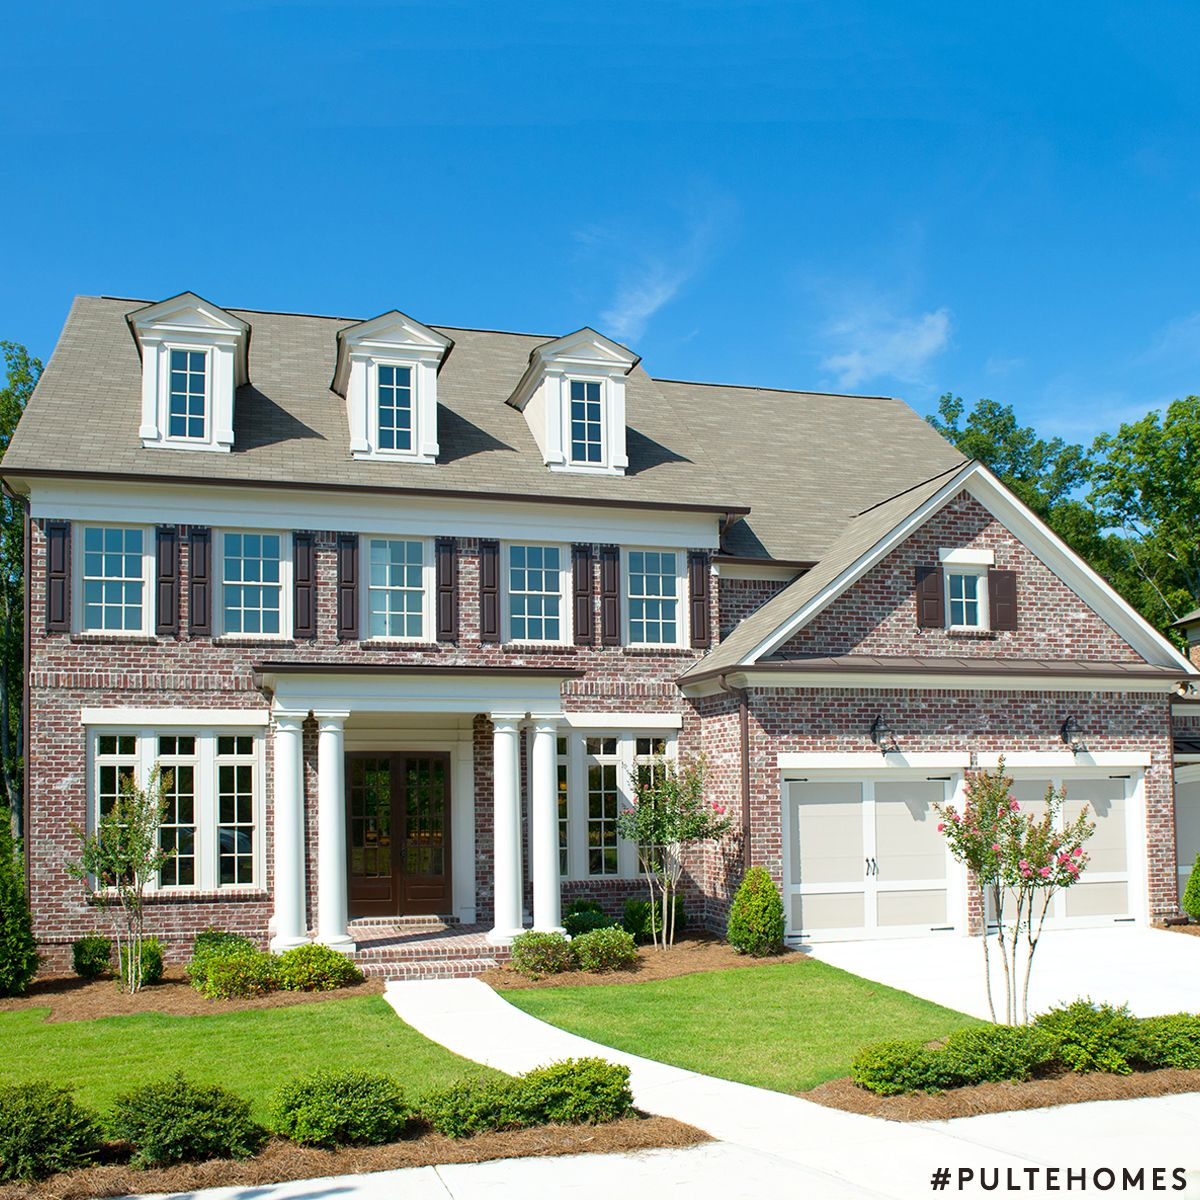 Roswell Luxury New Construction Homes: We Stand Behind Every Home We Build With A Warranty You